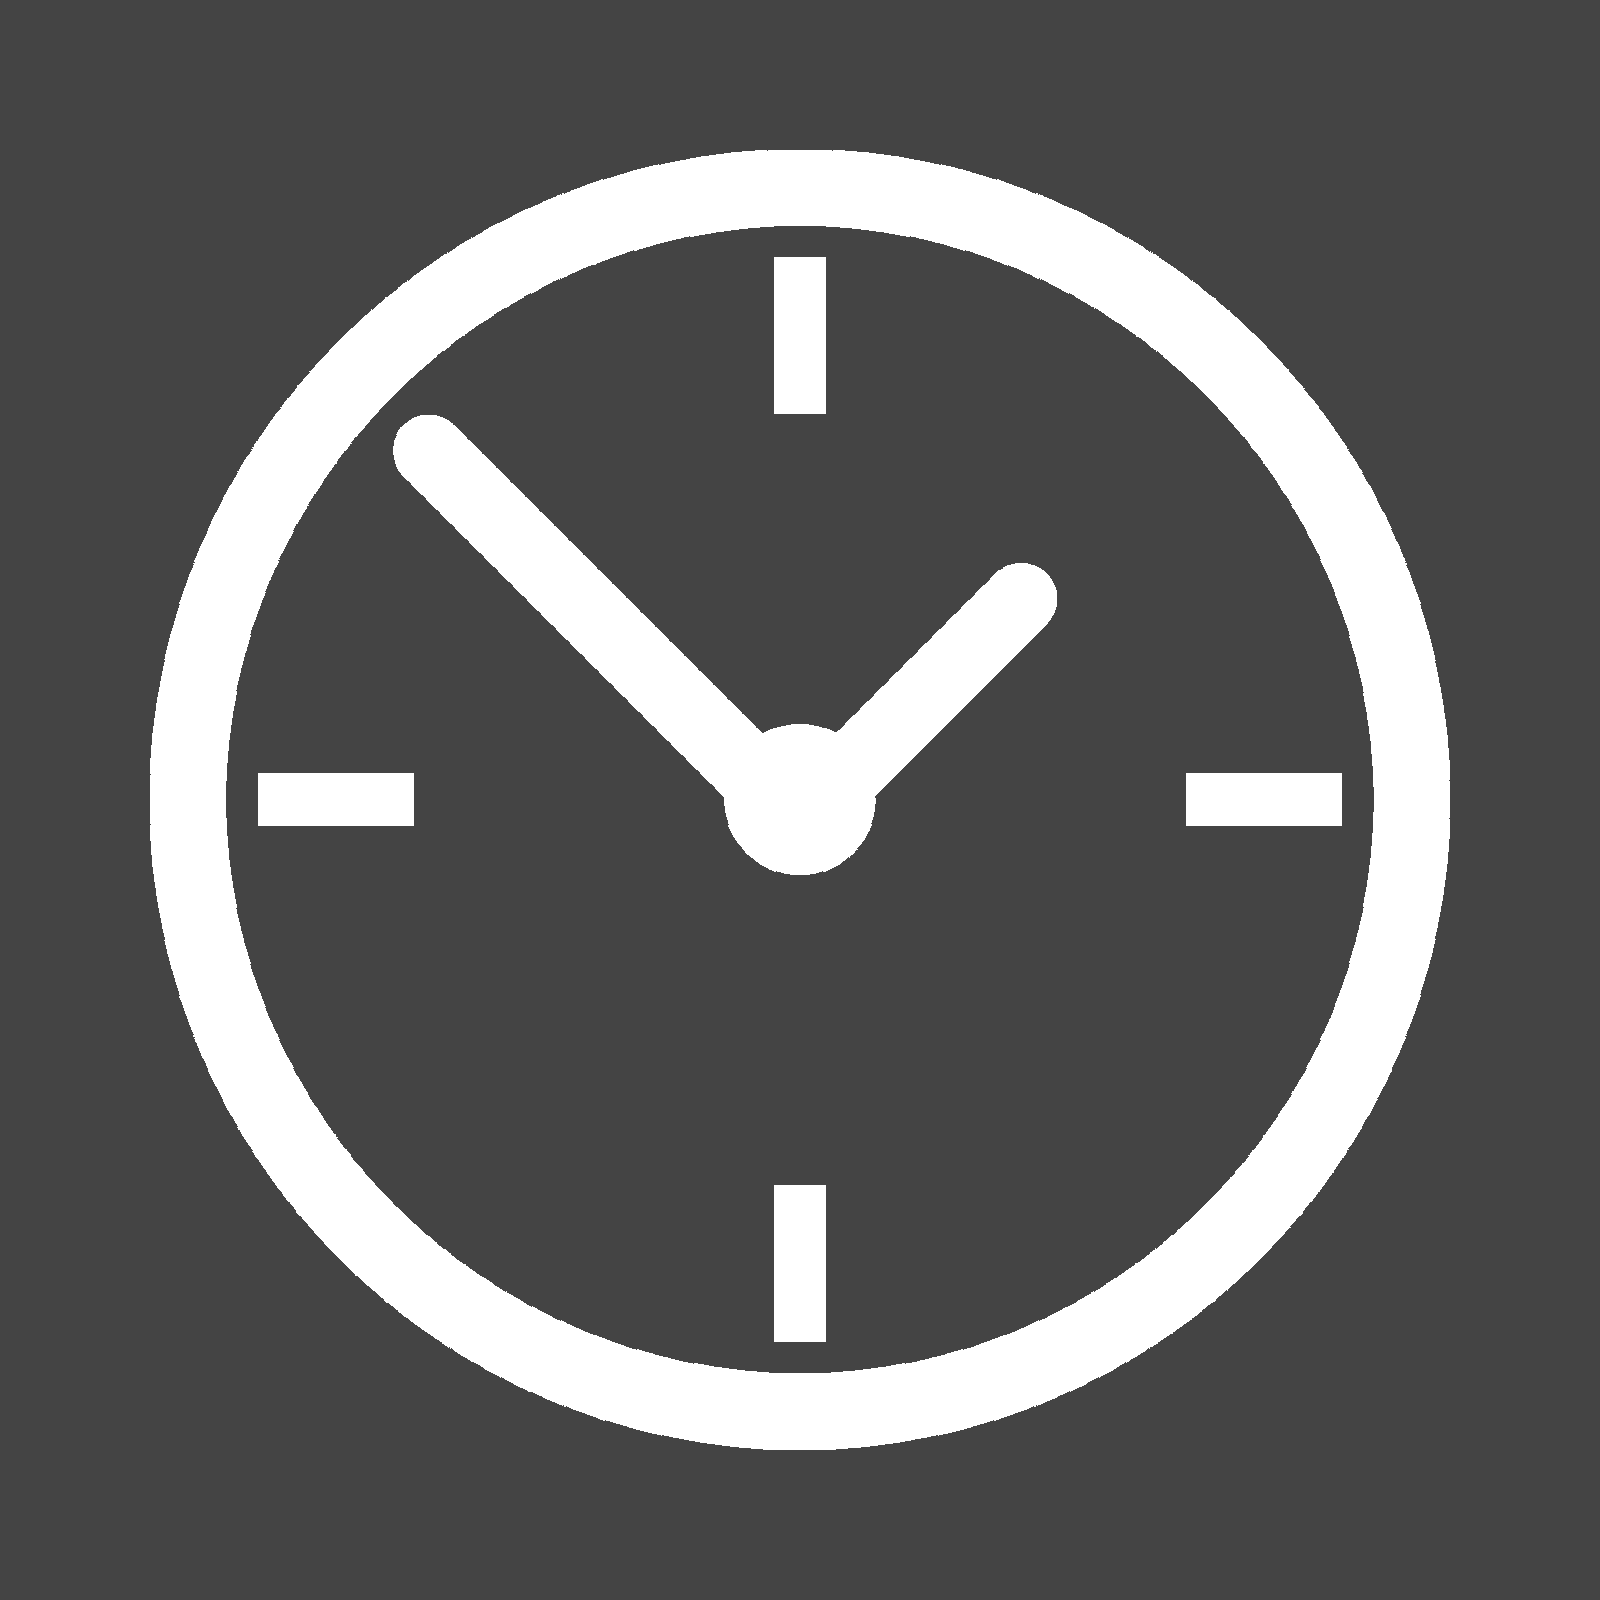 Icon showing a clock to convey time